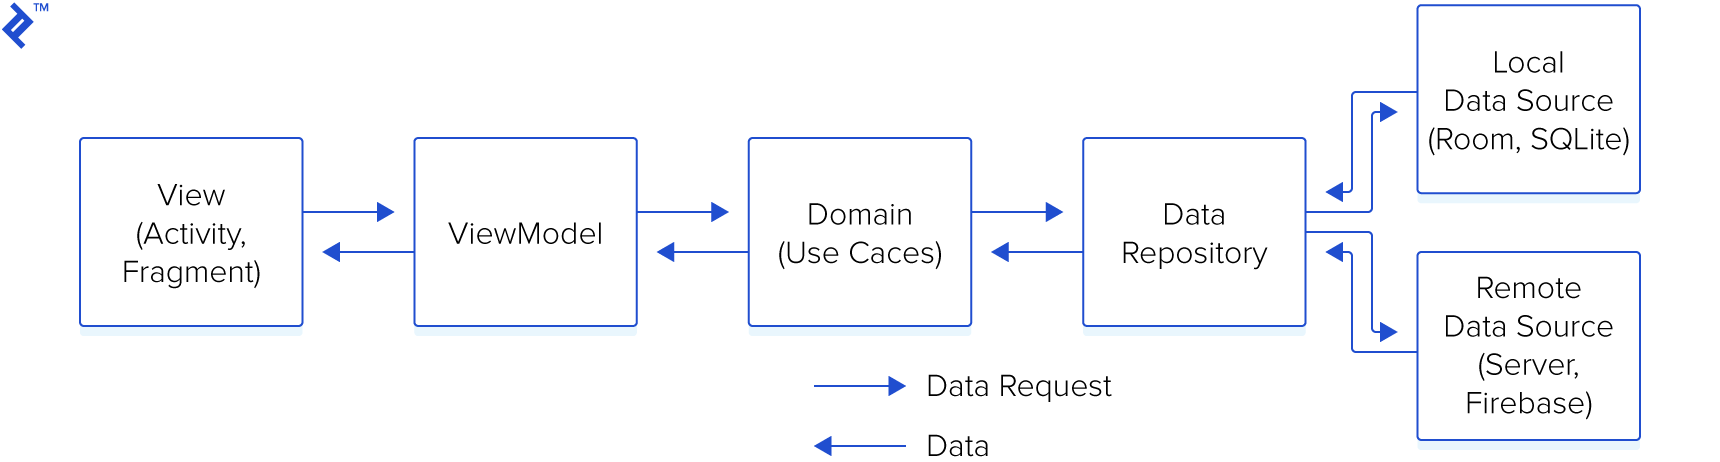 hight resolution of the data flow of mvvm with clean architecture data flows from view to viewmodel to